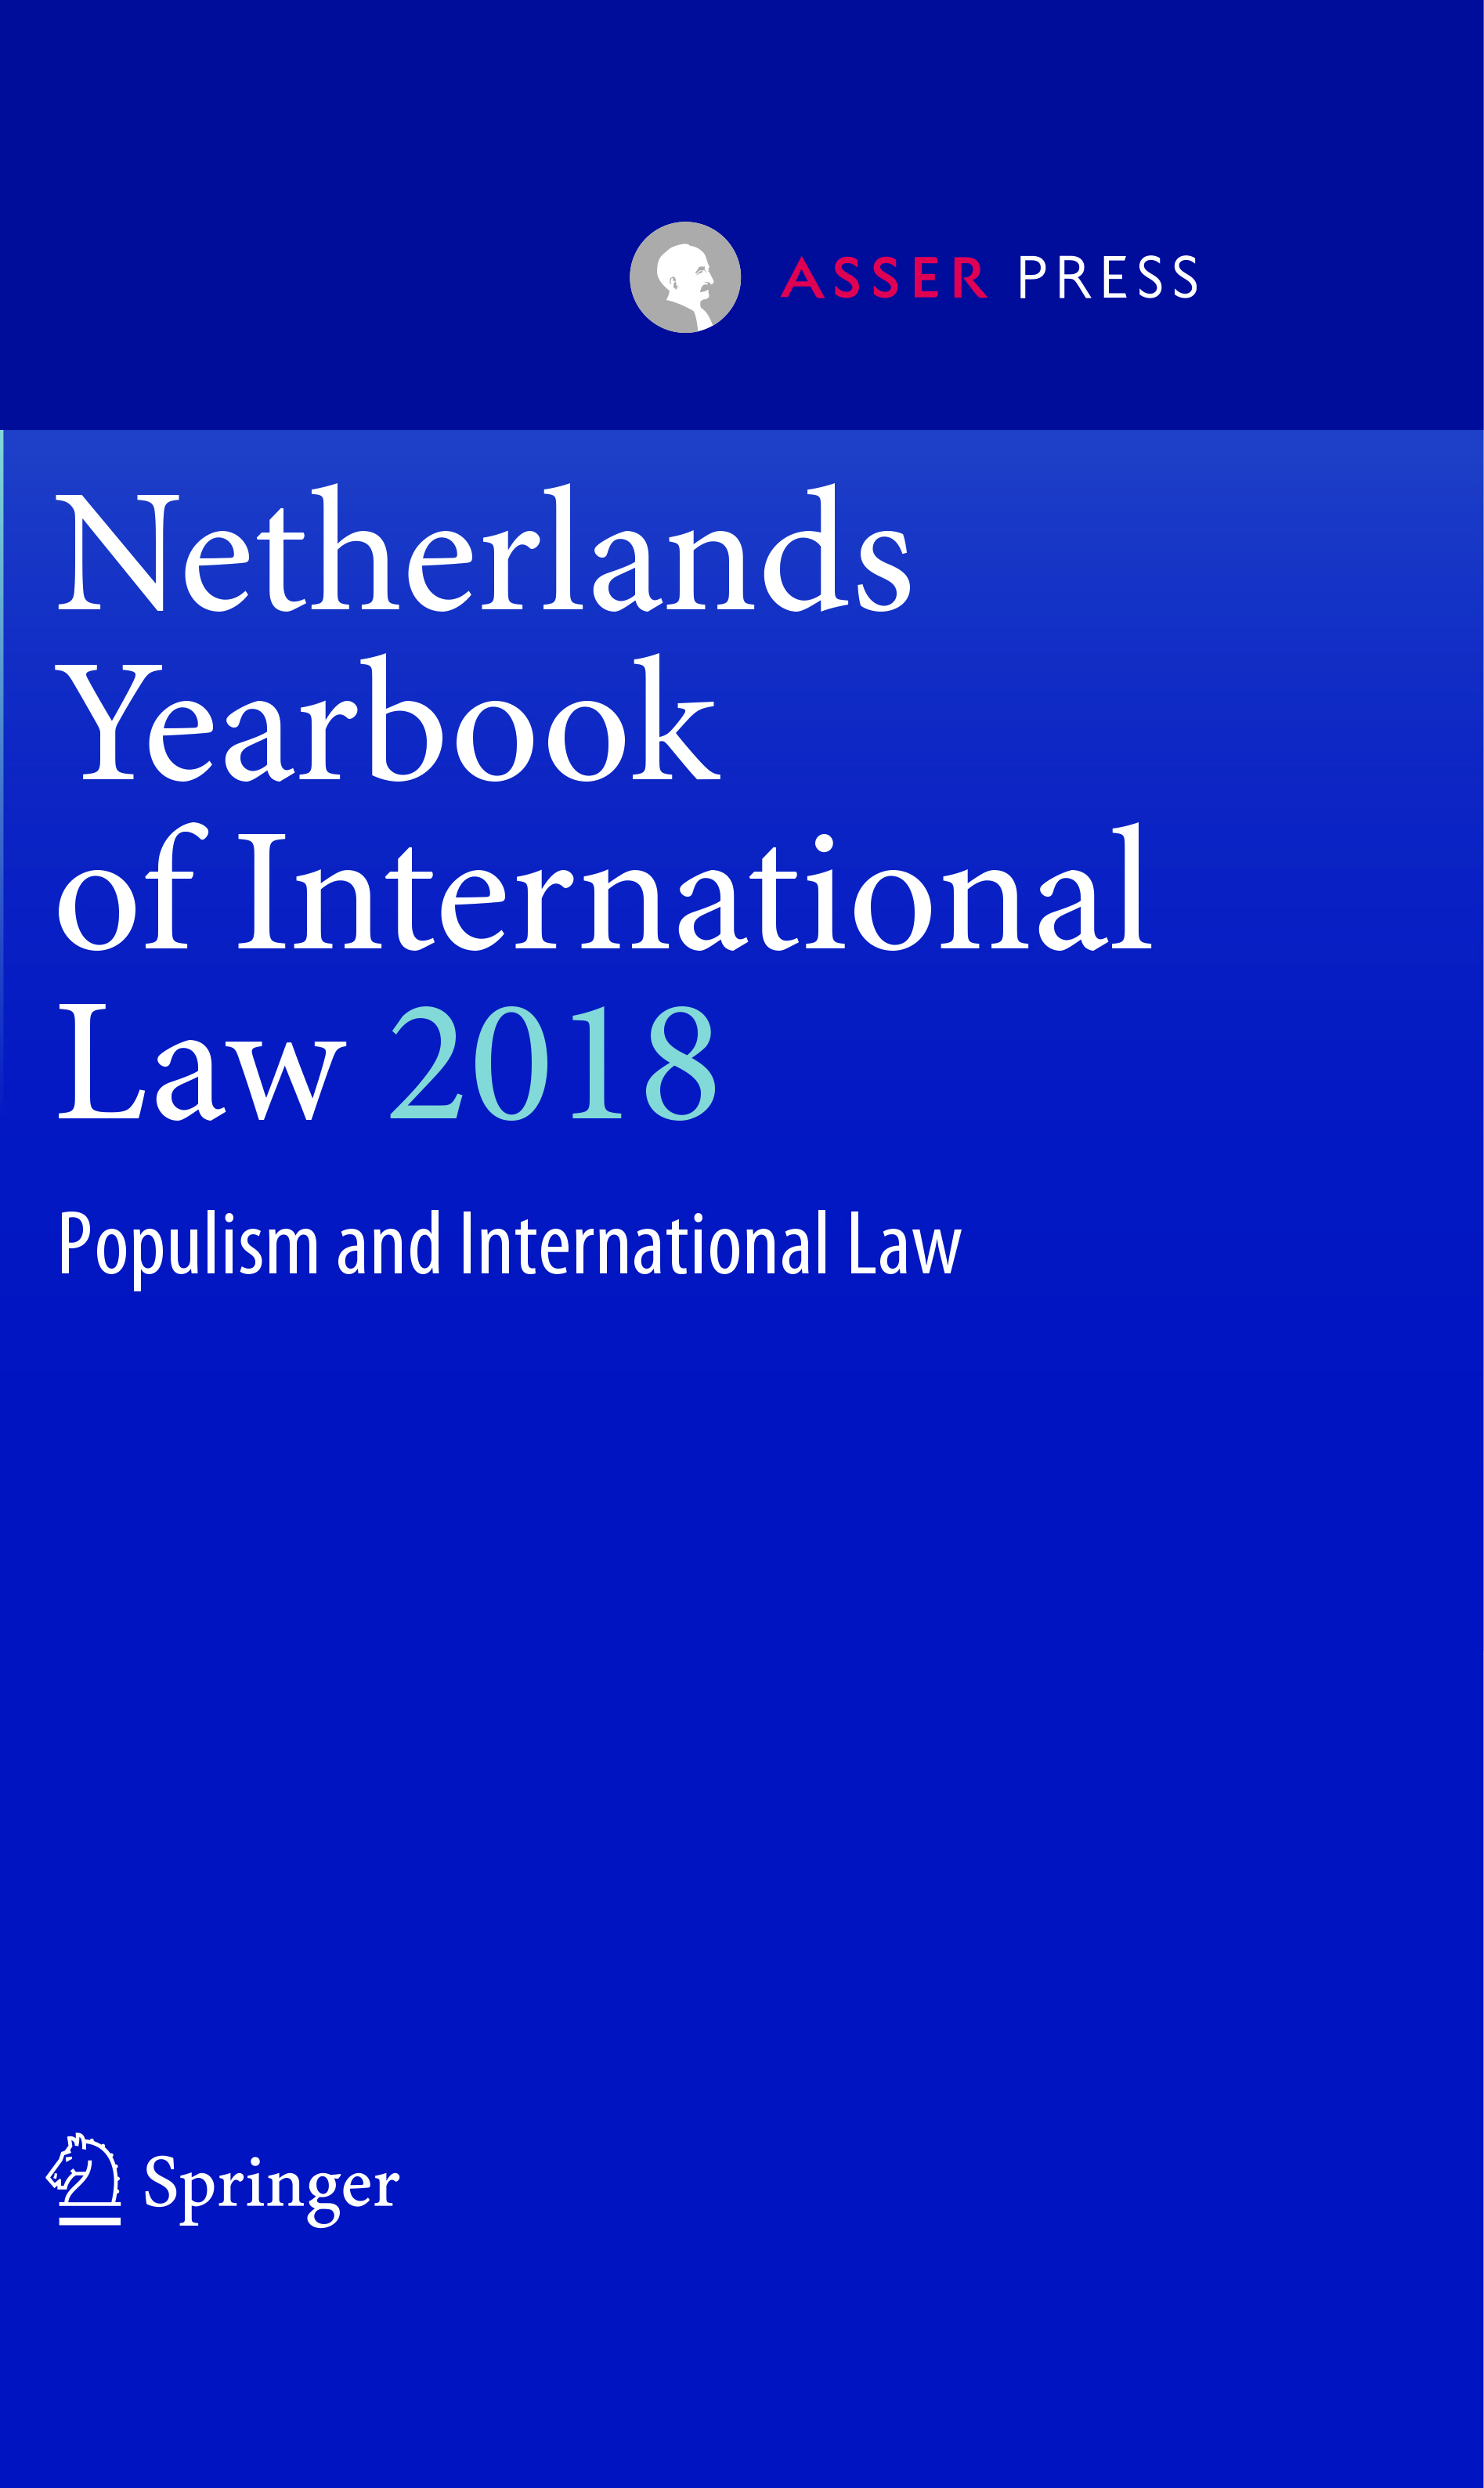 Netherlands Yearbook of International Law 2018 - Populism and International Law